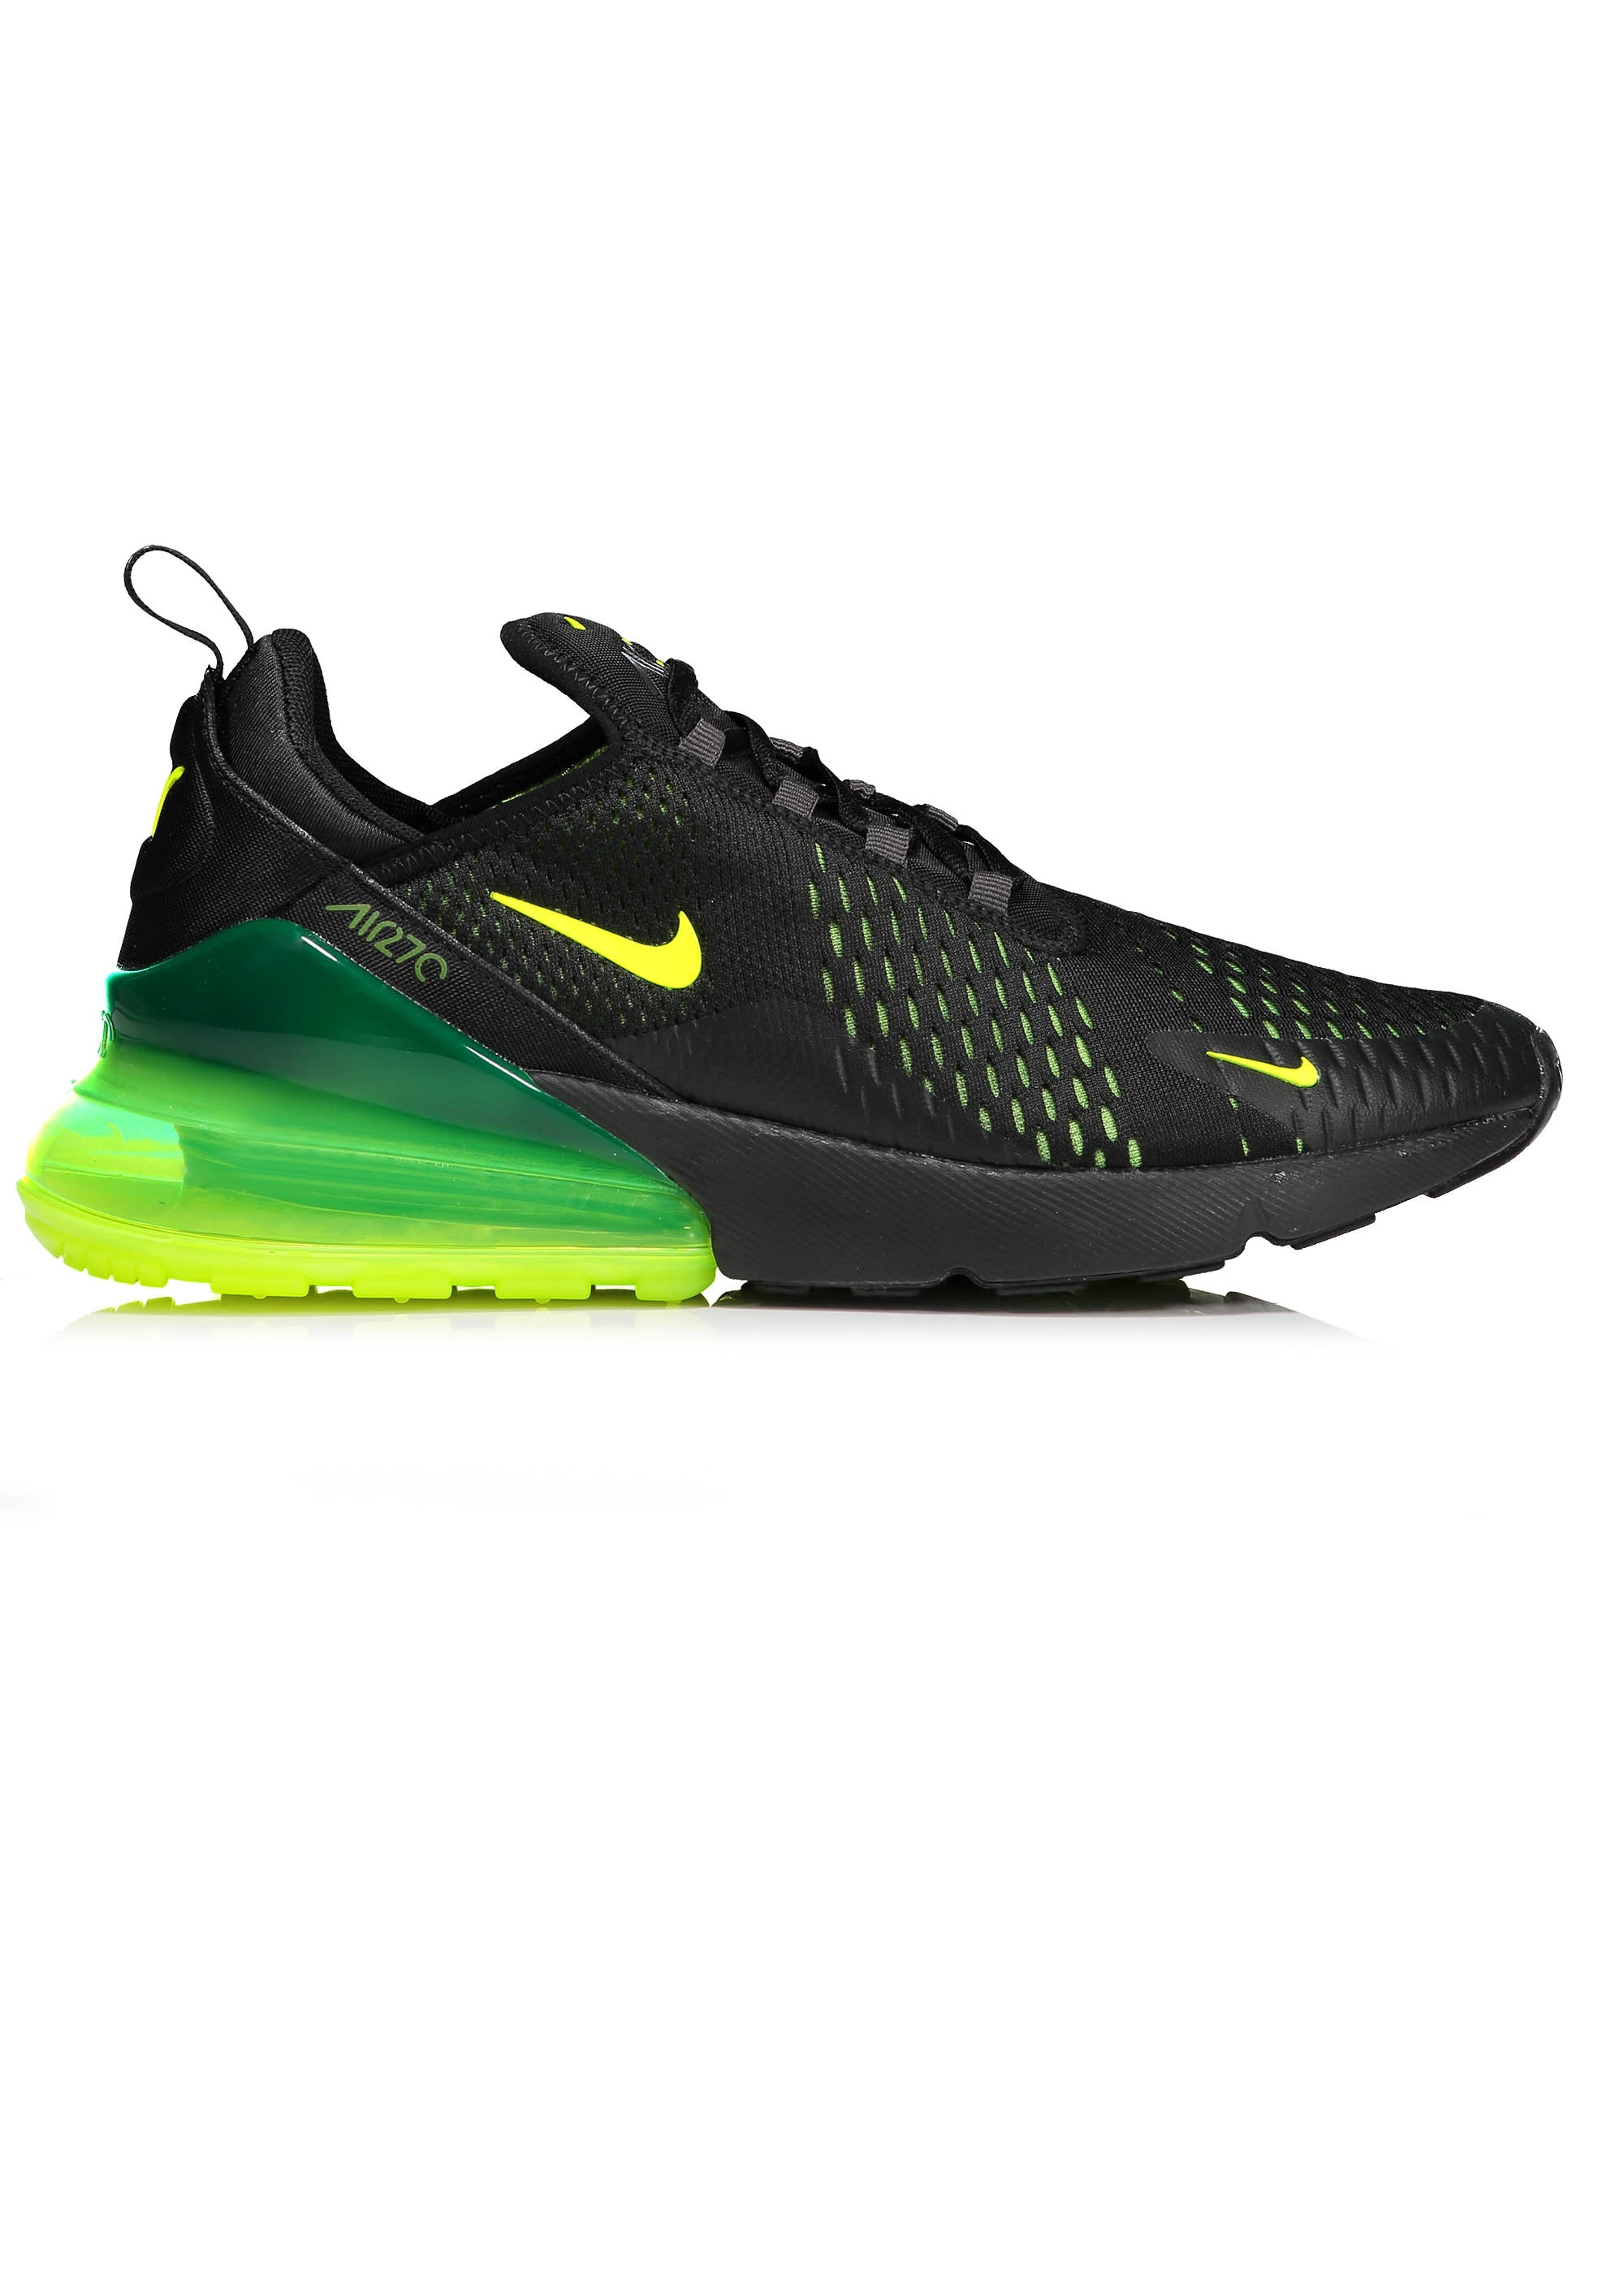 premium selection 7166d b6026 Nike Footwear Air Max 270 - Black / Volt